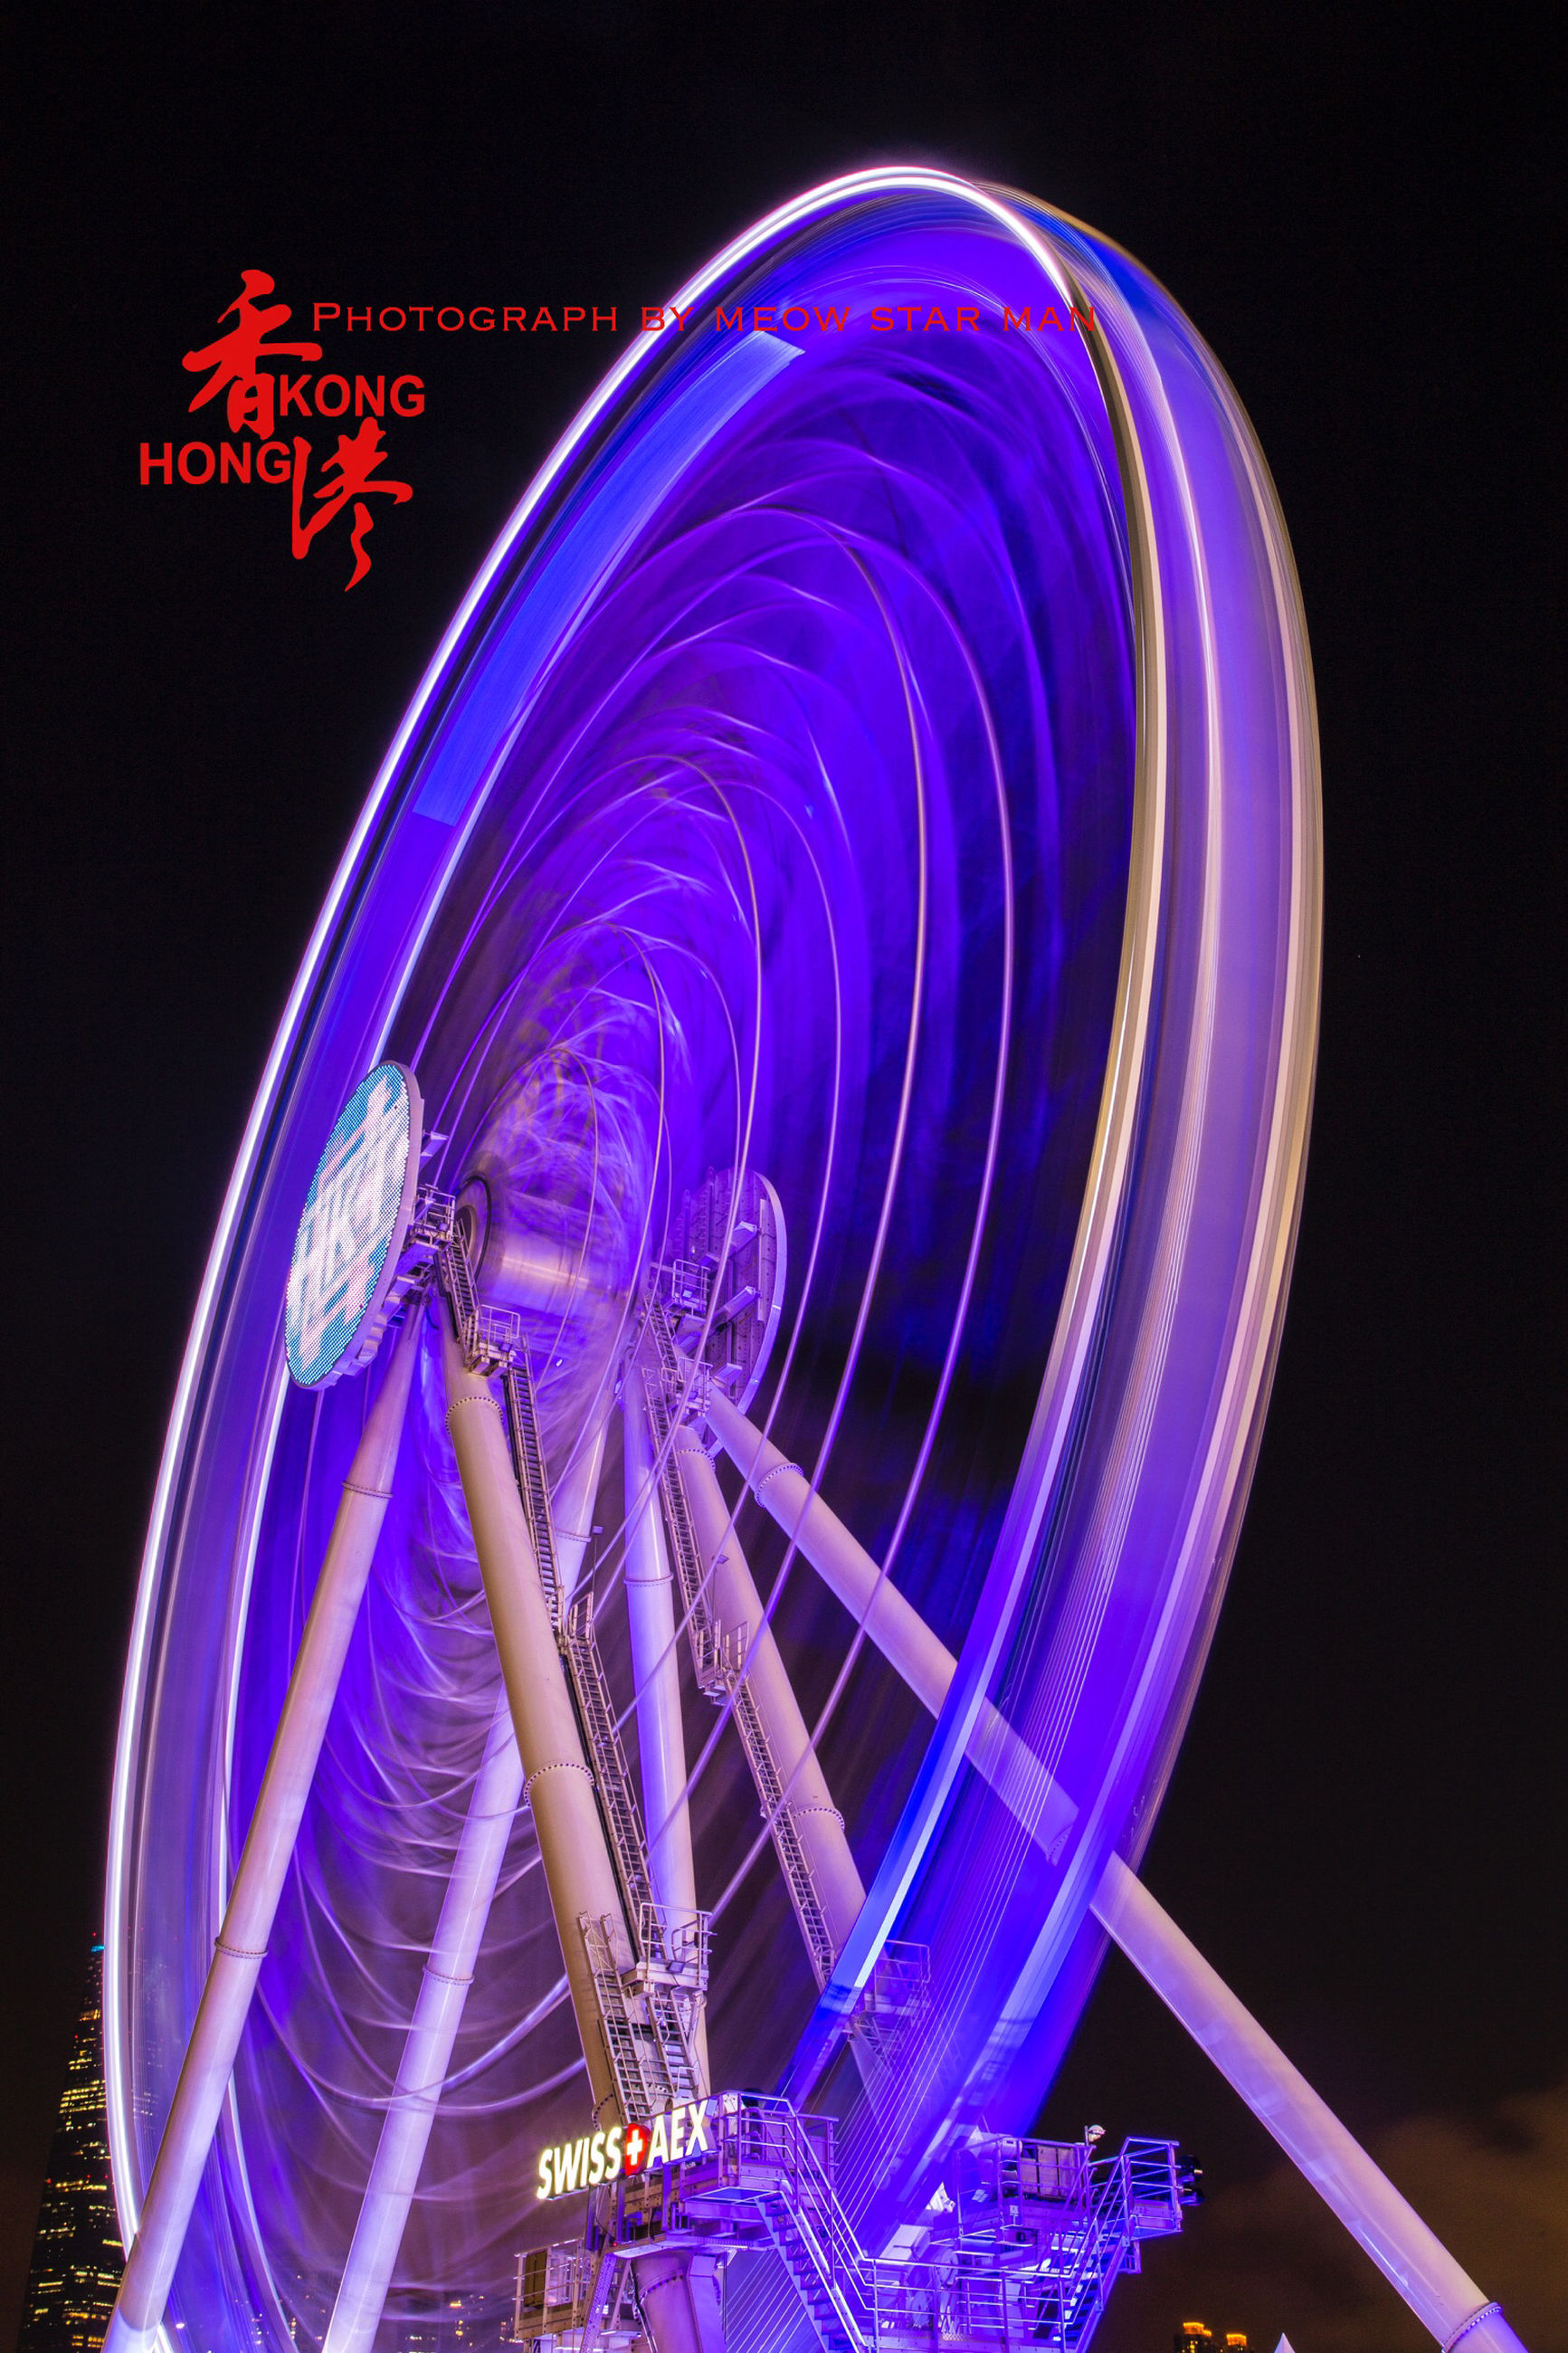 night, illuminated, long exposure, arts culture and entertainment, motion, circle, multi colored, ferris wheel, amusement park, amusement park ride, light trail, speed, spinning, blurred motion, low angle view, glowing, blue, sky, celebration, outdoors